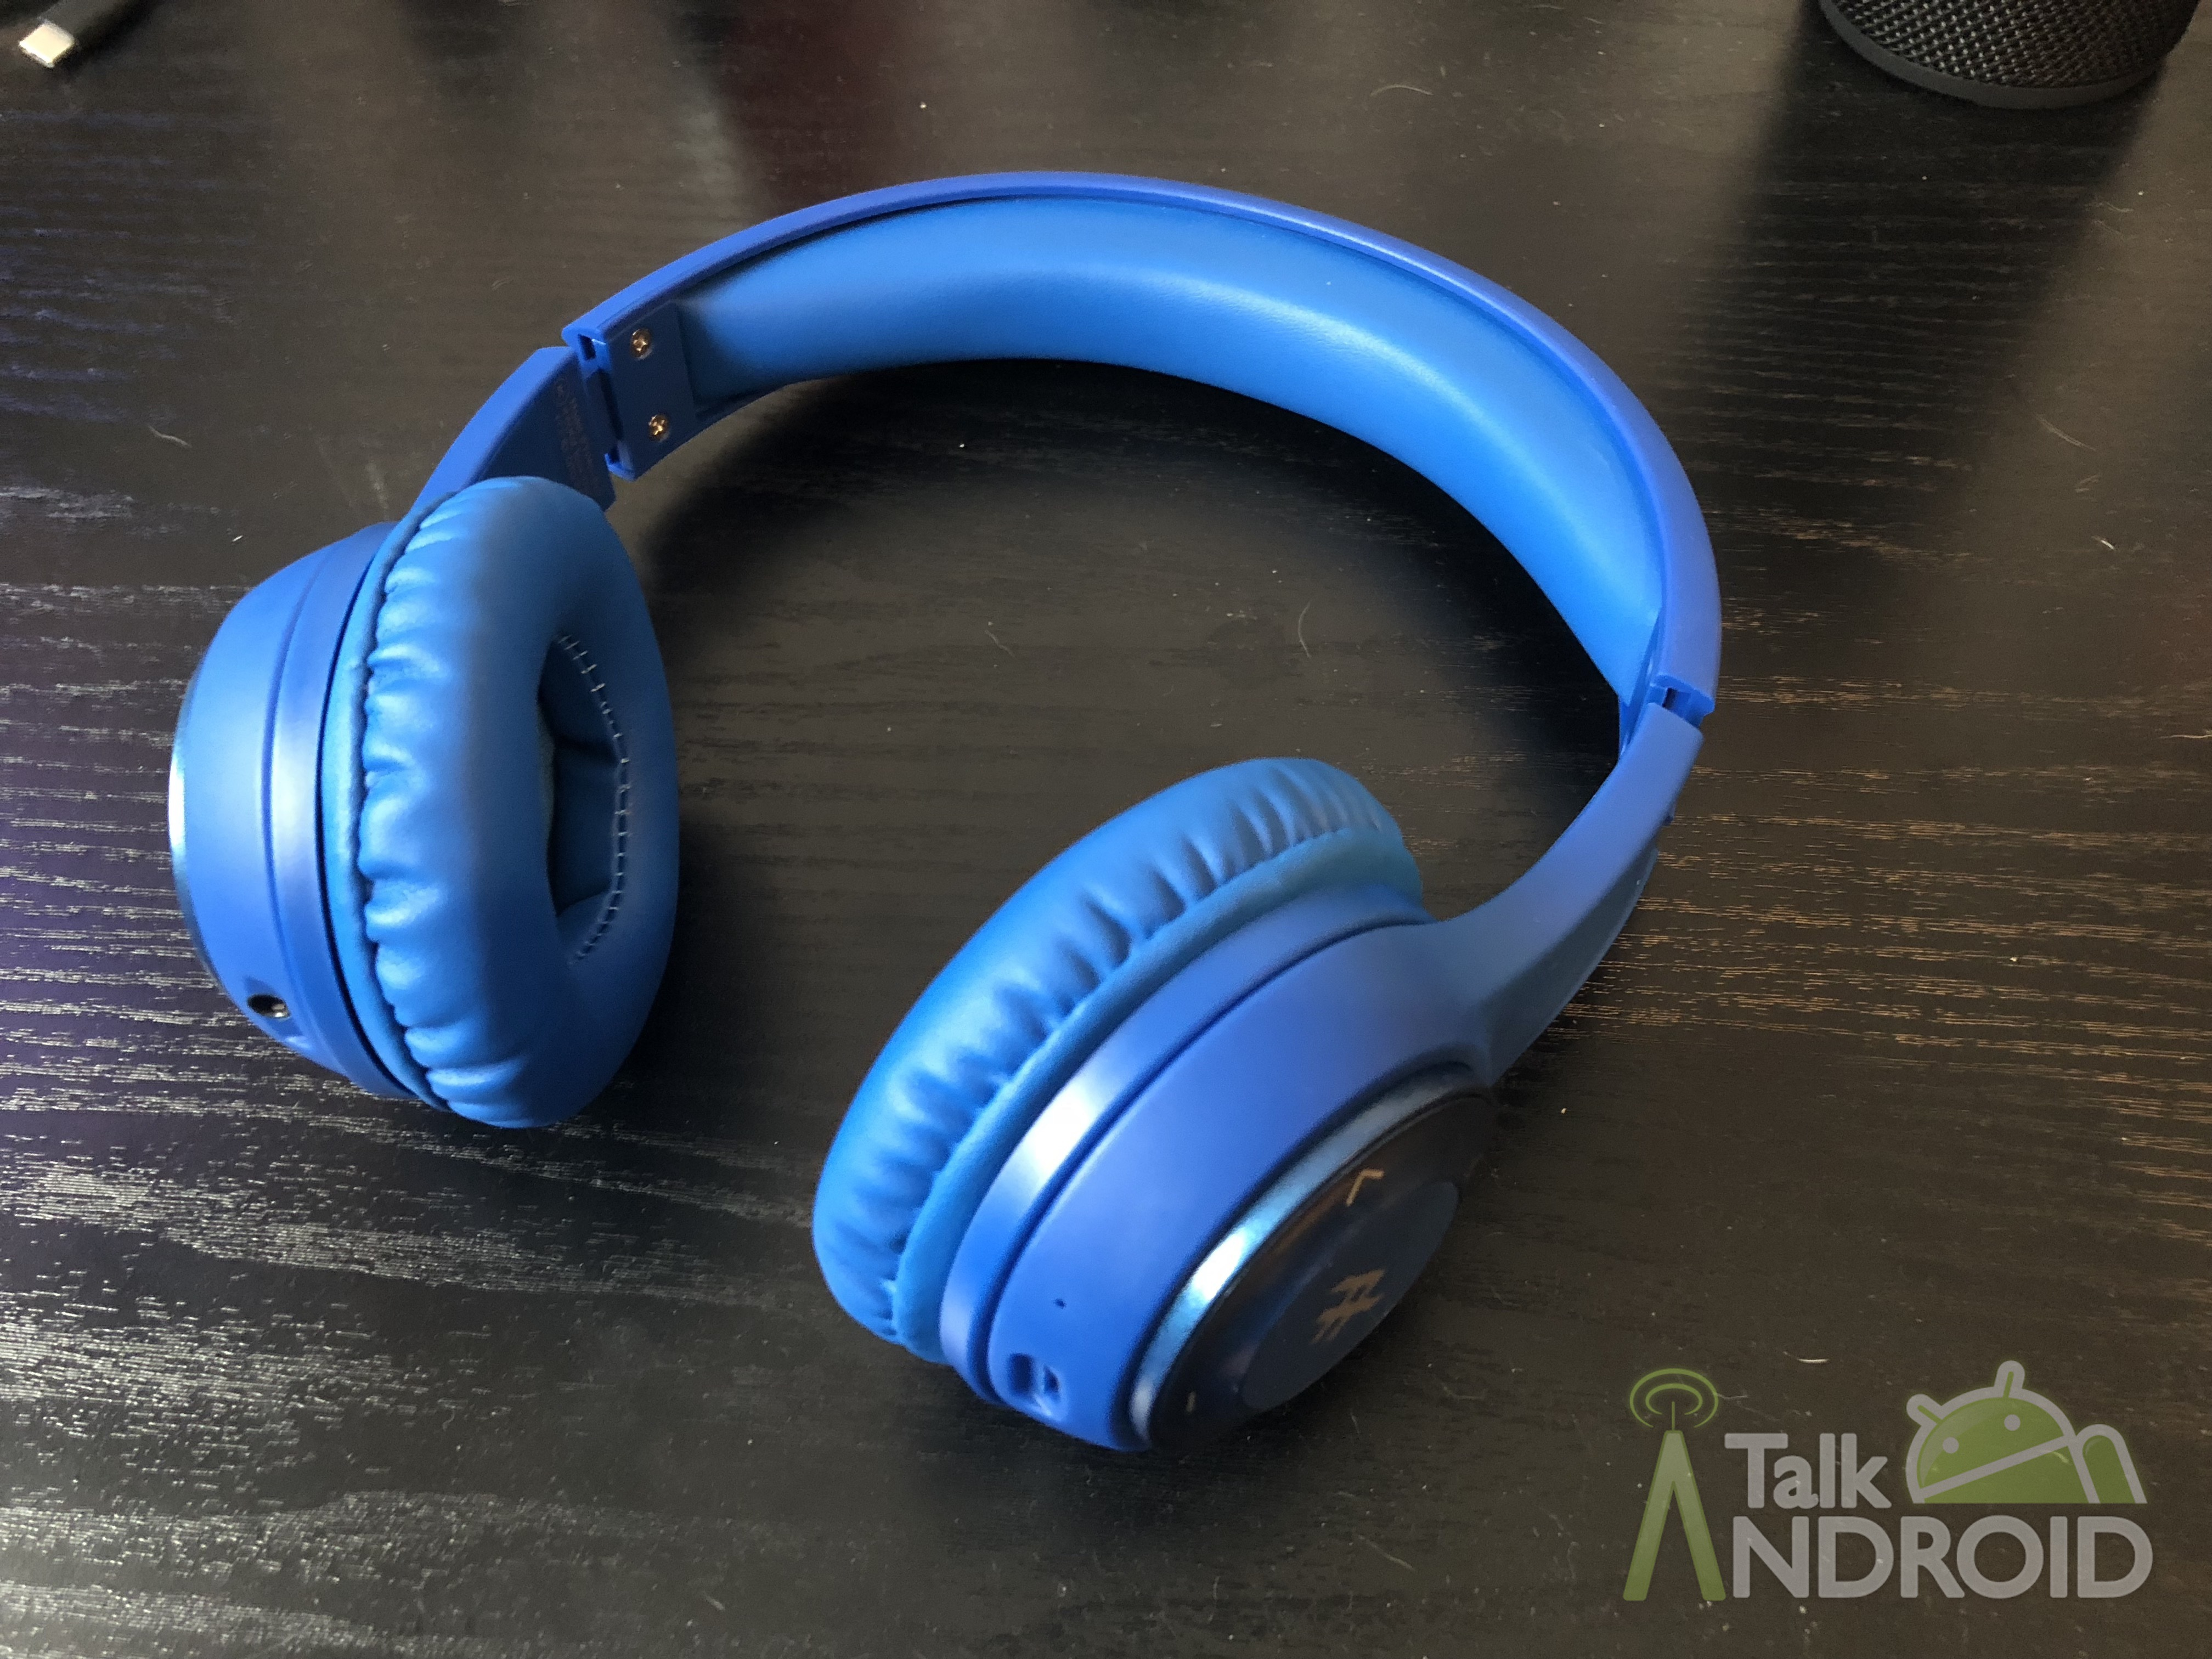 102321d3f2b iFrogz has built a reputation for building decent accessories for your  mobile devices without outrageous price tags. We've reviewed a few sets of  headphones ...